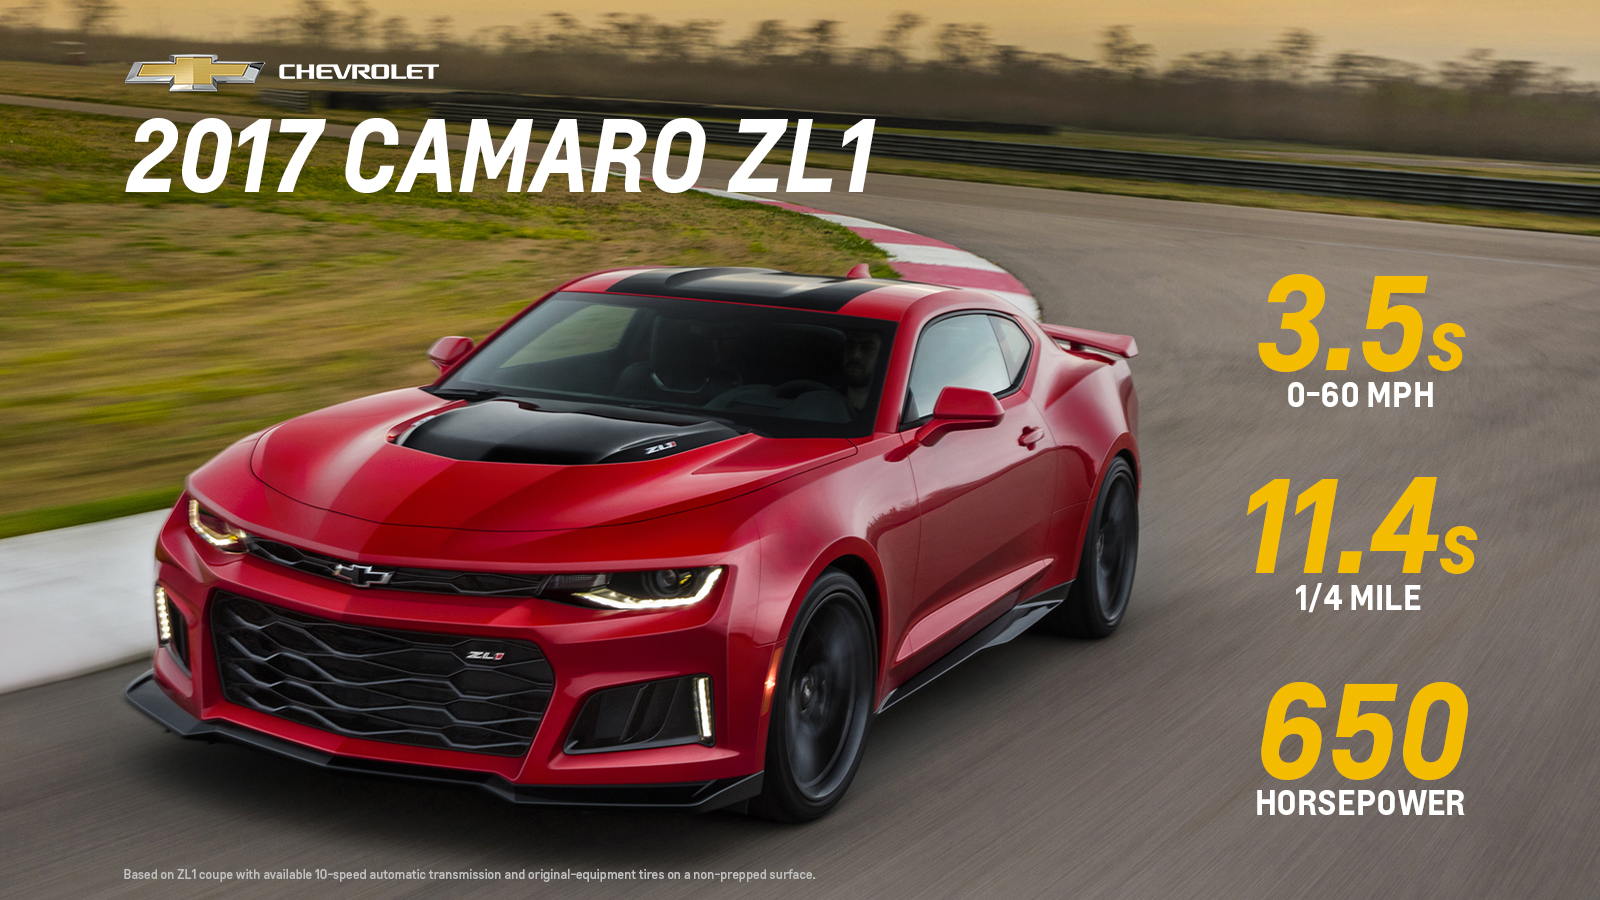 Cruze chevy cruze 0-60 : 2017 Camaro ZL1 and 1LE: Get Used To Our Taillights